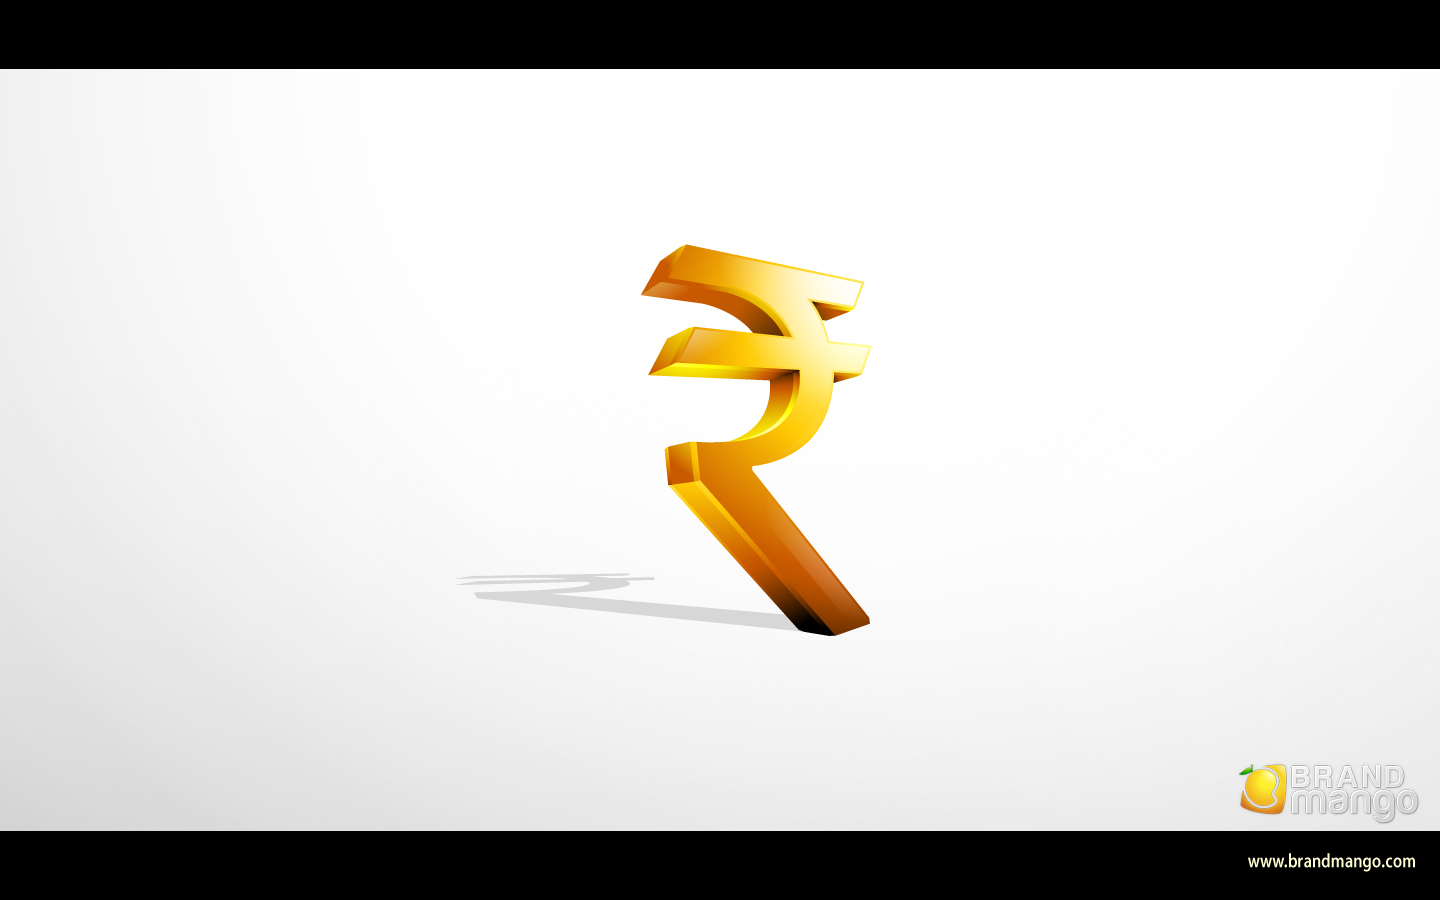 Dharbhar indian rupee symbol wallpapers here are they biocorpaavc Choice Image